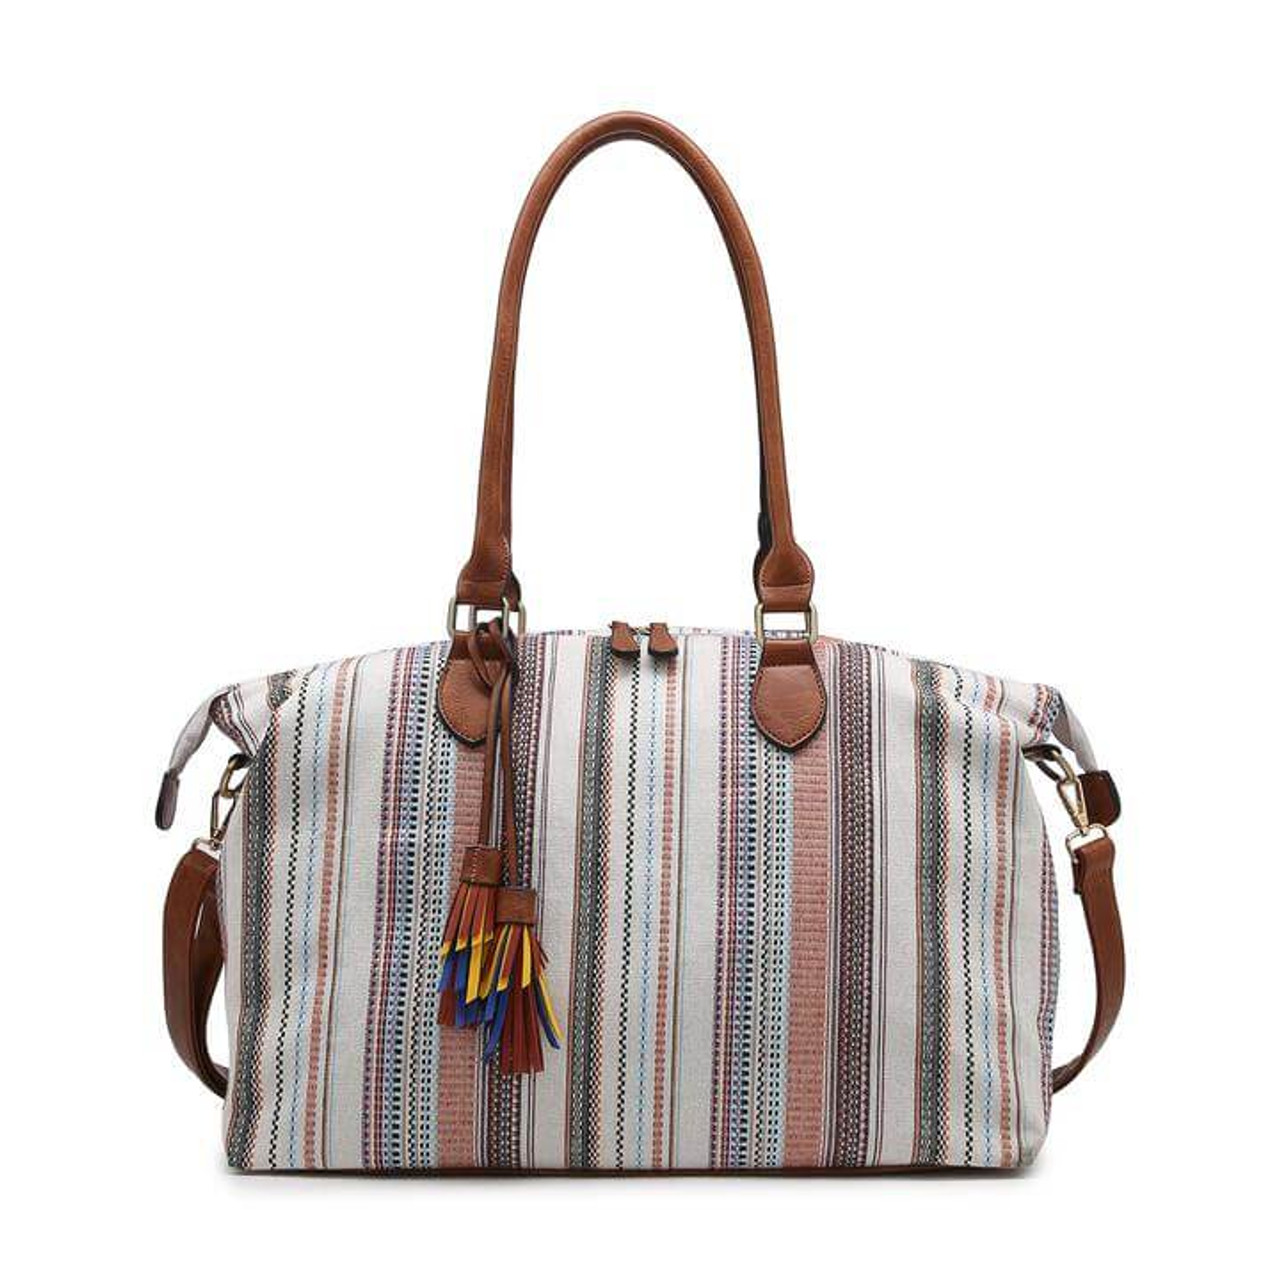 multi-color canvas duffel bag! The base, handles, and details are vegan leather. Includes one zip and two slip pockets on the inside and one back zip pocket. The top zips closed and an adjustable/detachable shoulder strap is included